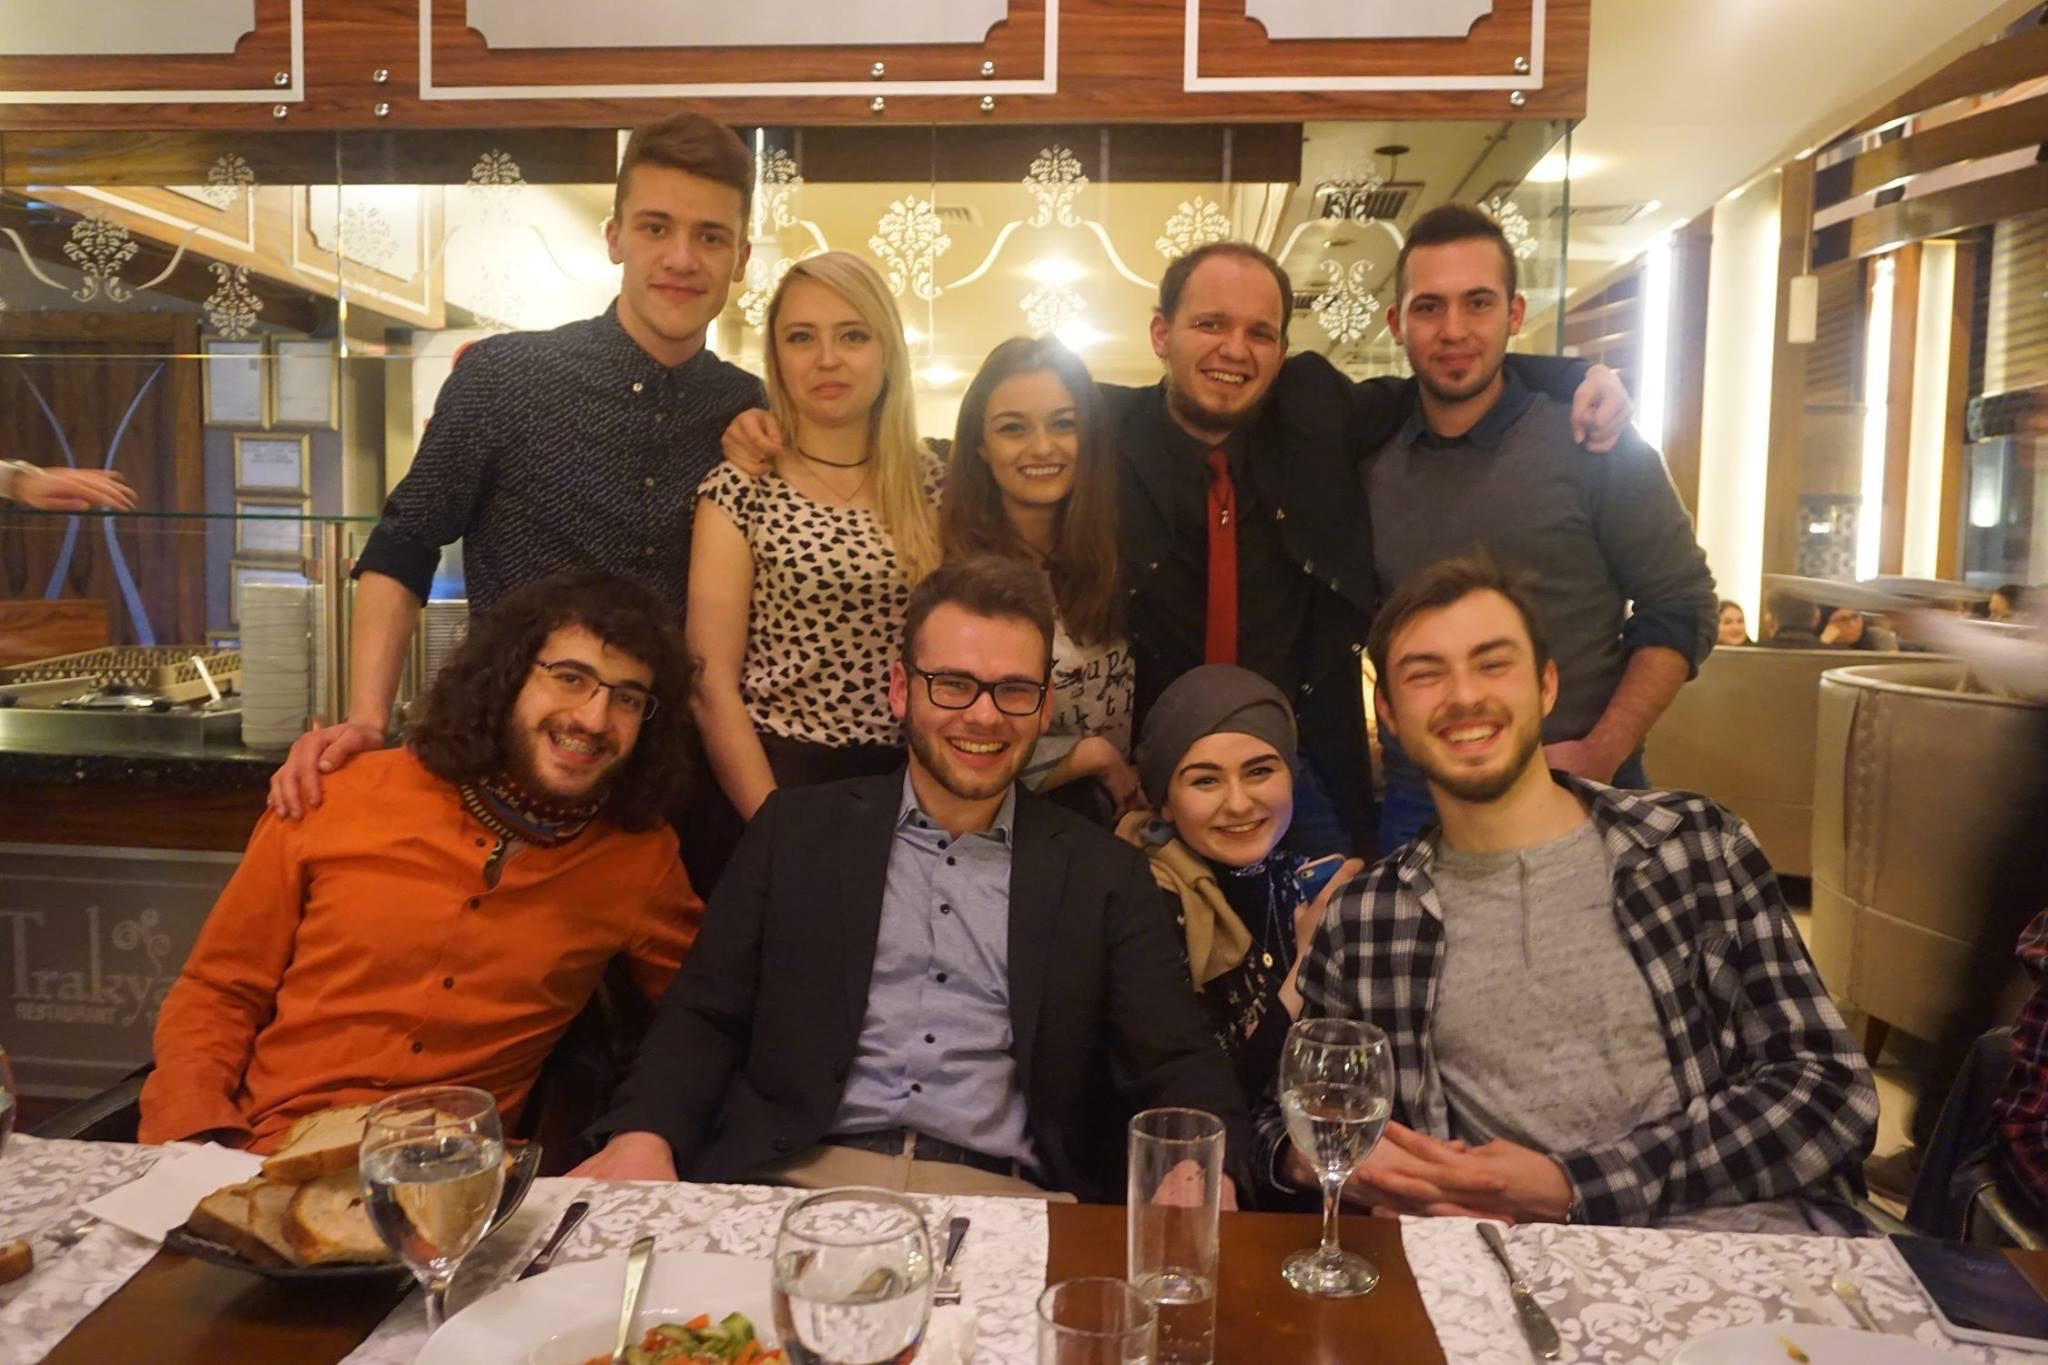 A LIFE-CHANGING EXPERIENCE WITH ERASMUS+